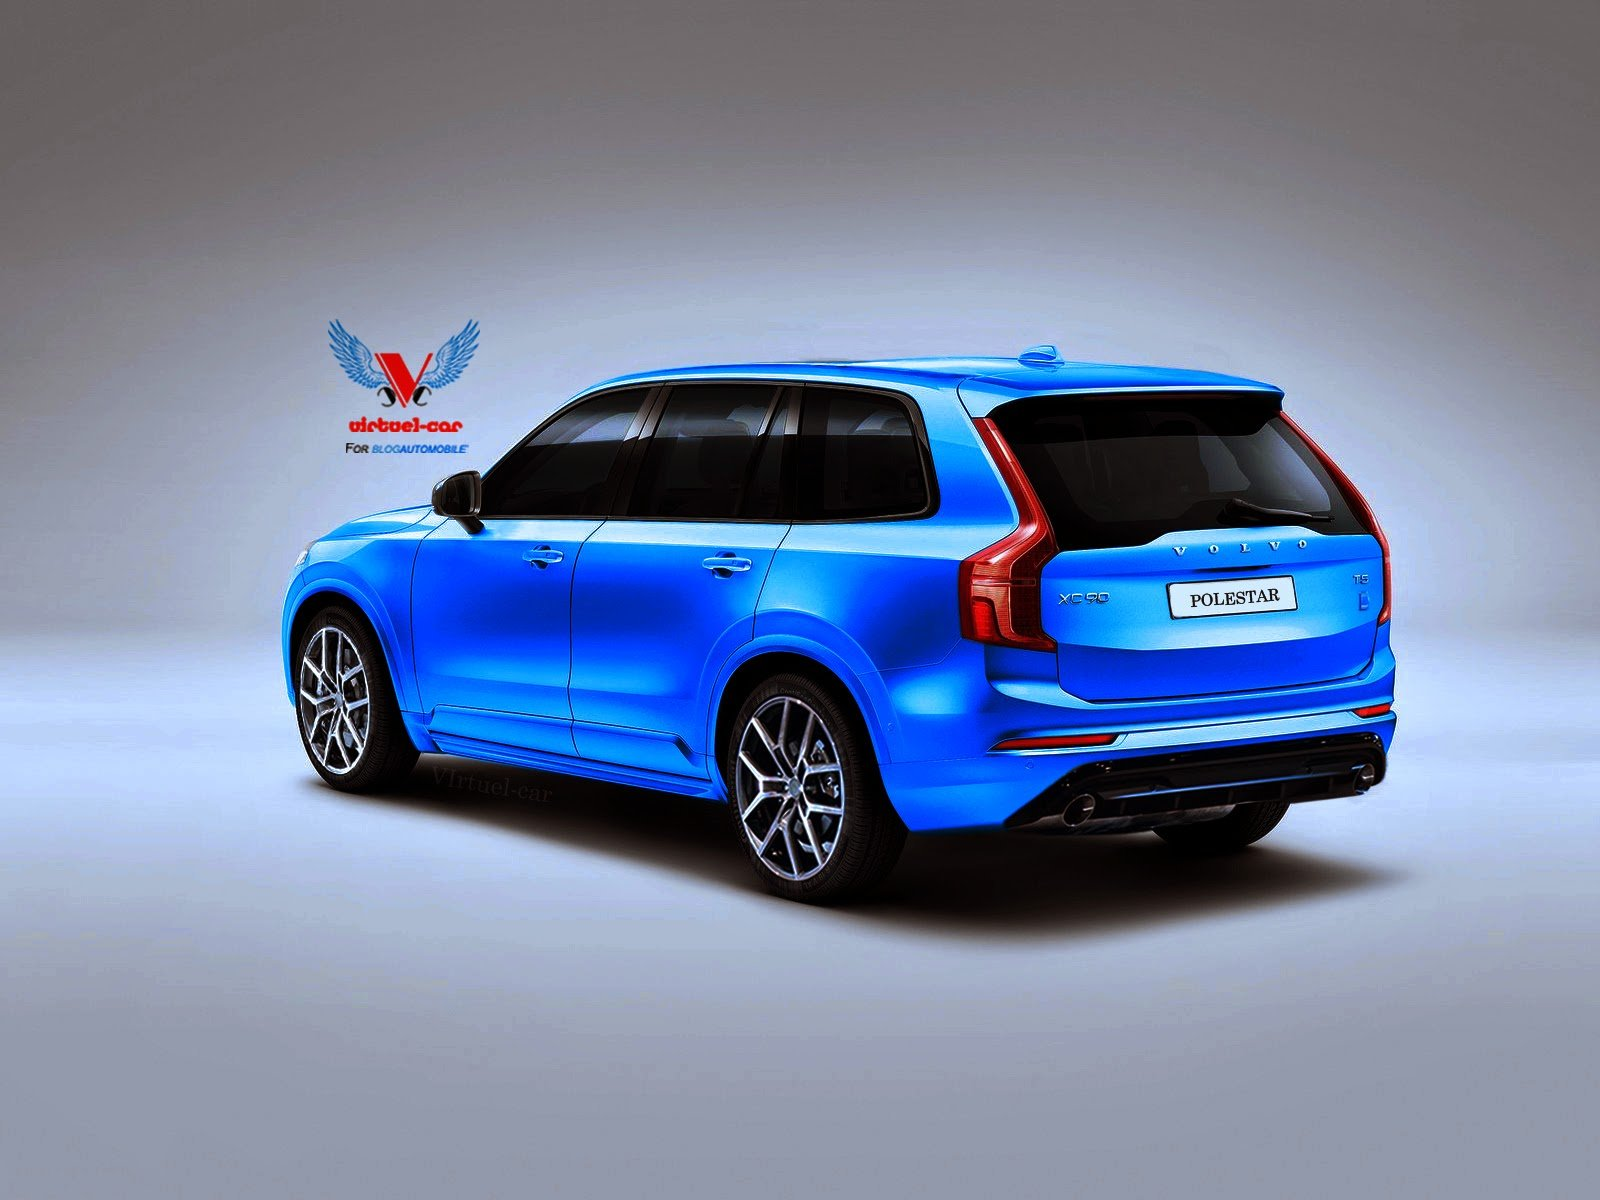 Volvo Gives Xc90 Suv Some Polestar Performance Boost